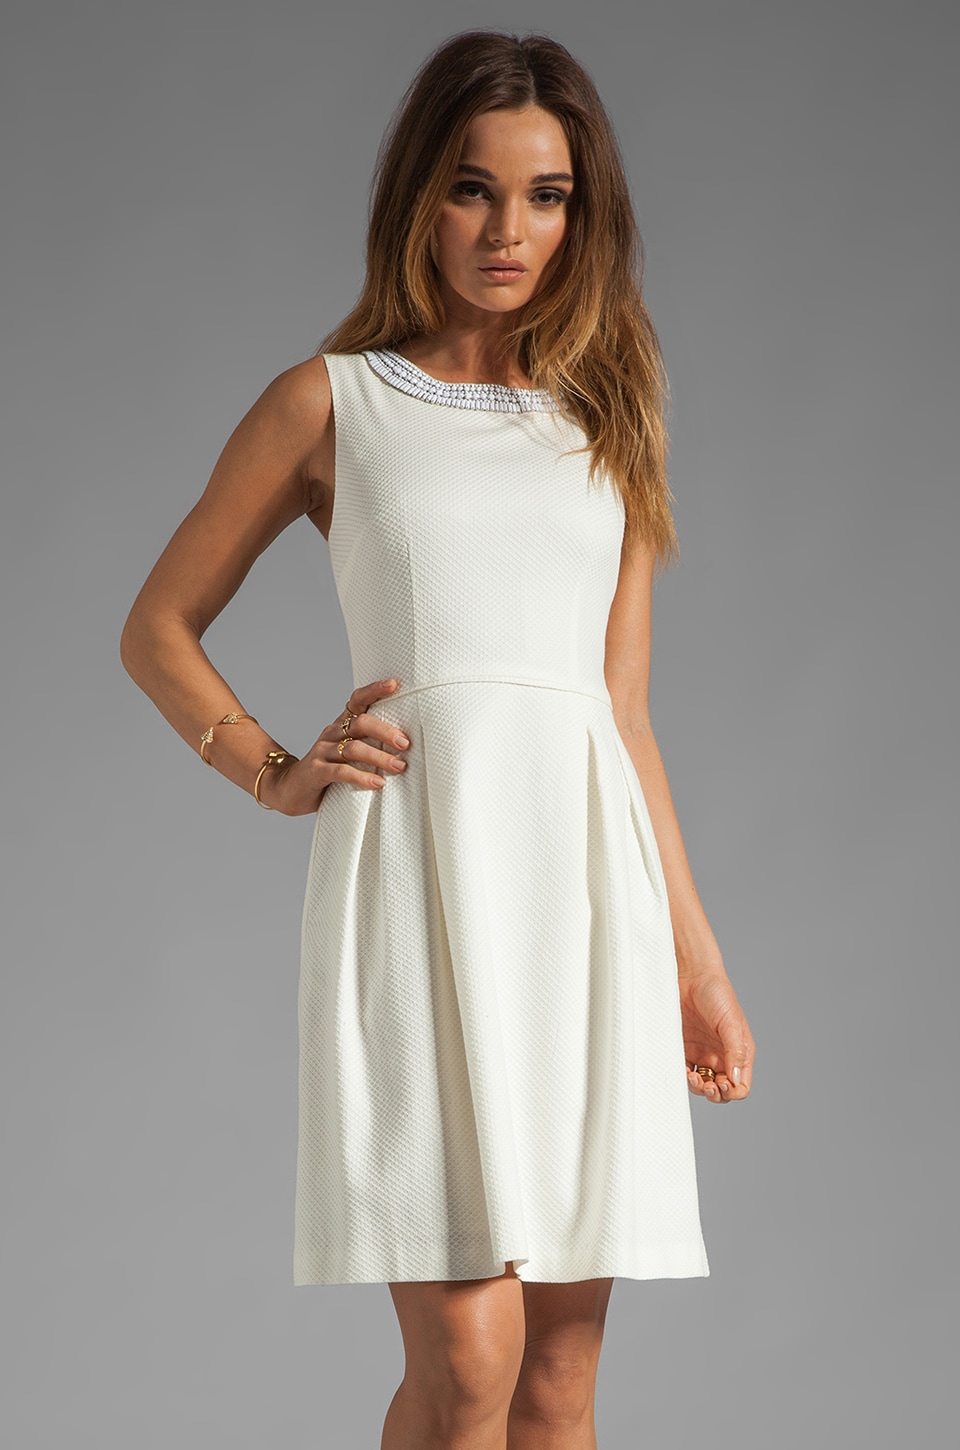 Trina Turk Seles Dress in White Wash